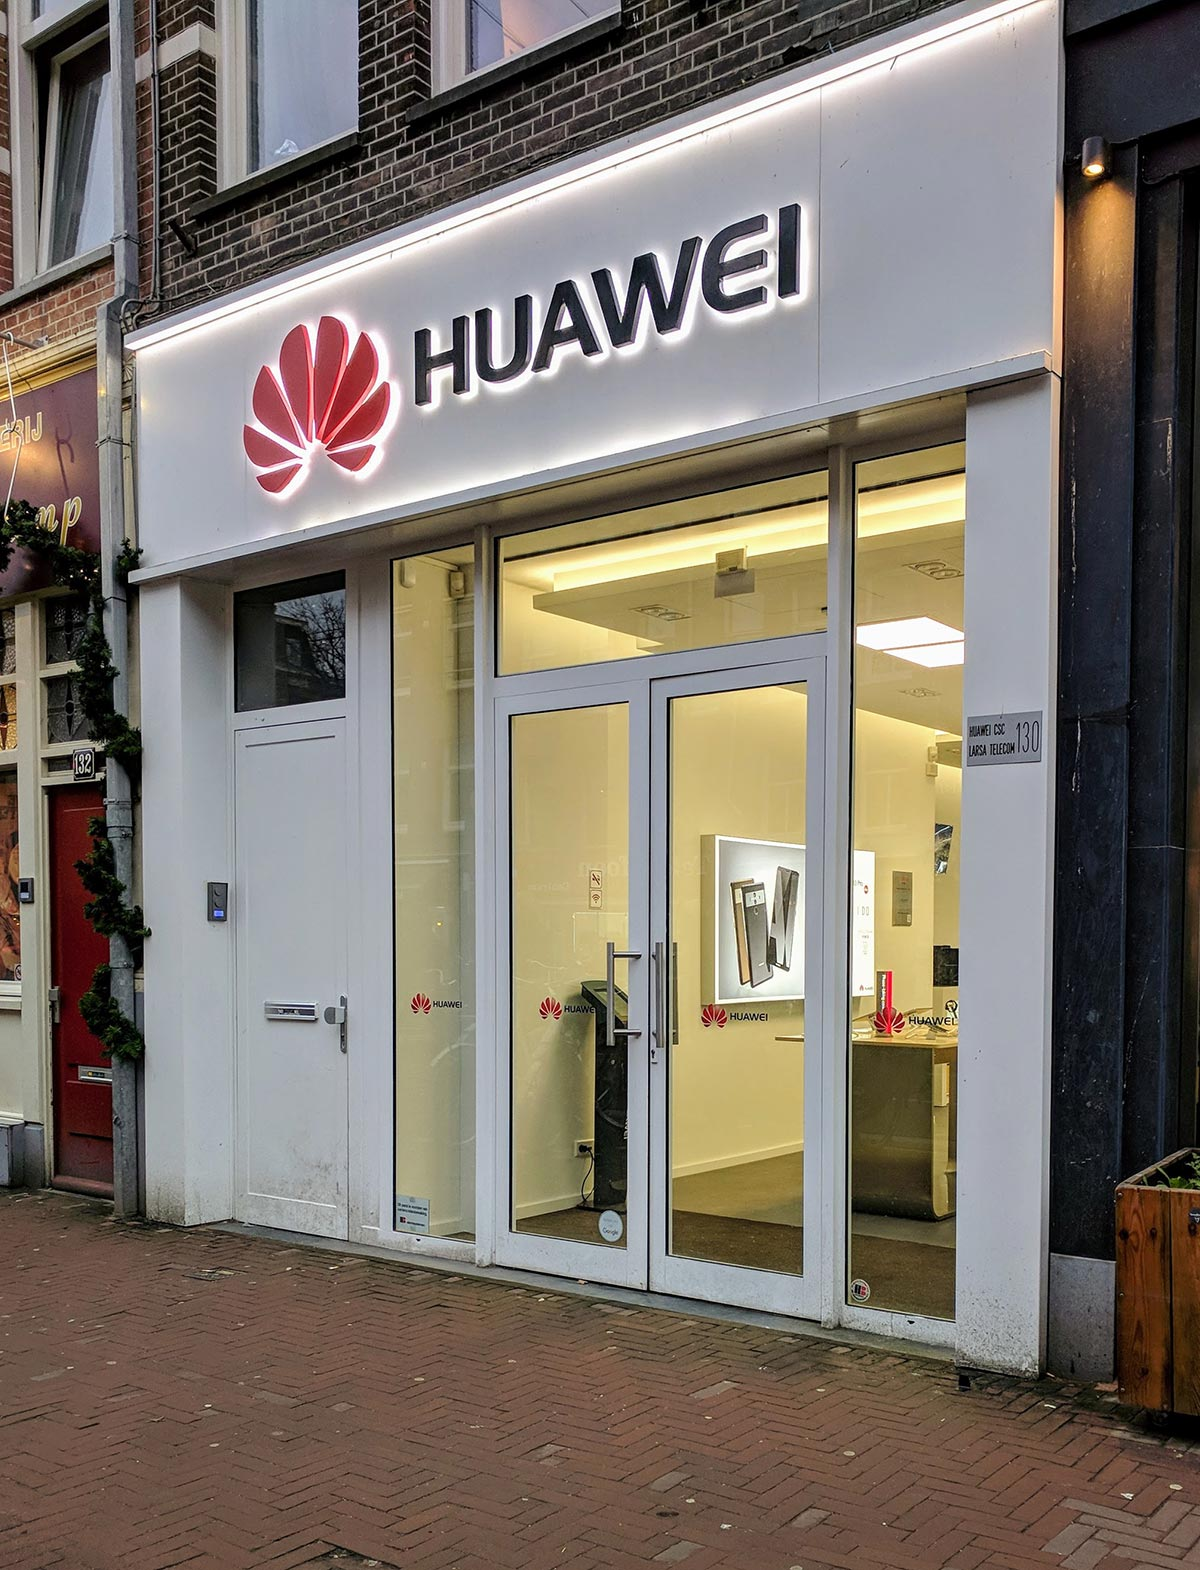 Huawei mobile phone shop window display